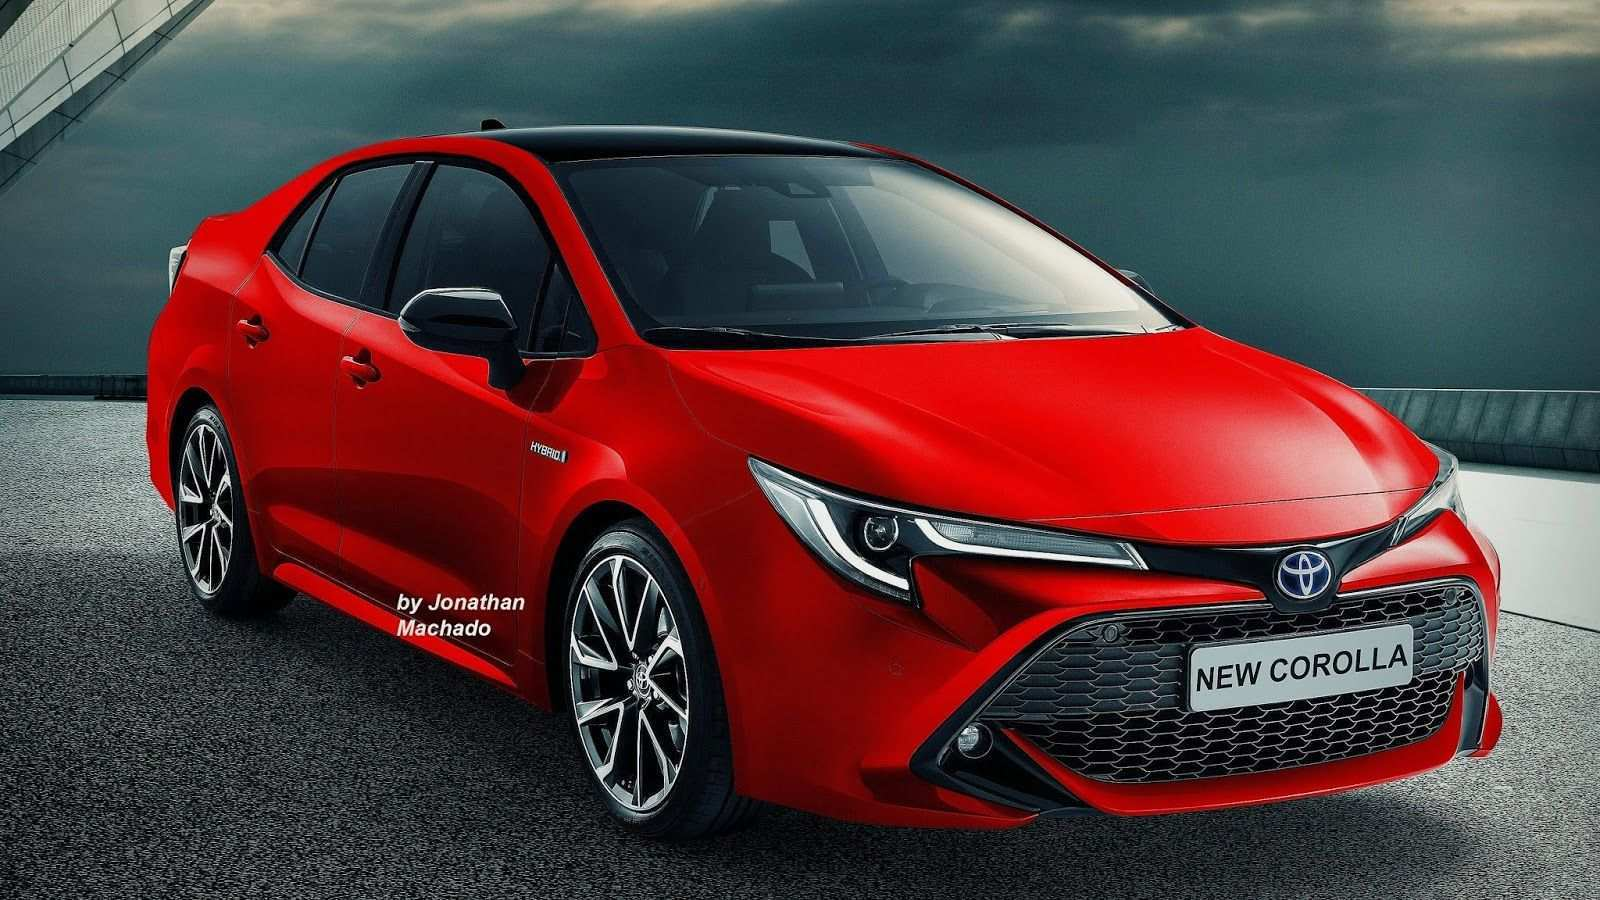 71 The Best 2019 Toyota Altis Review And Release Date